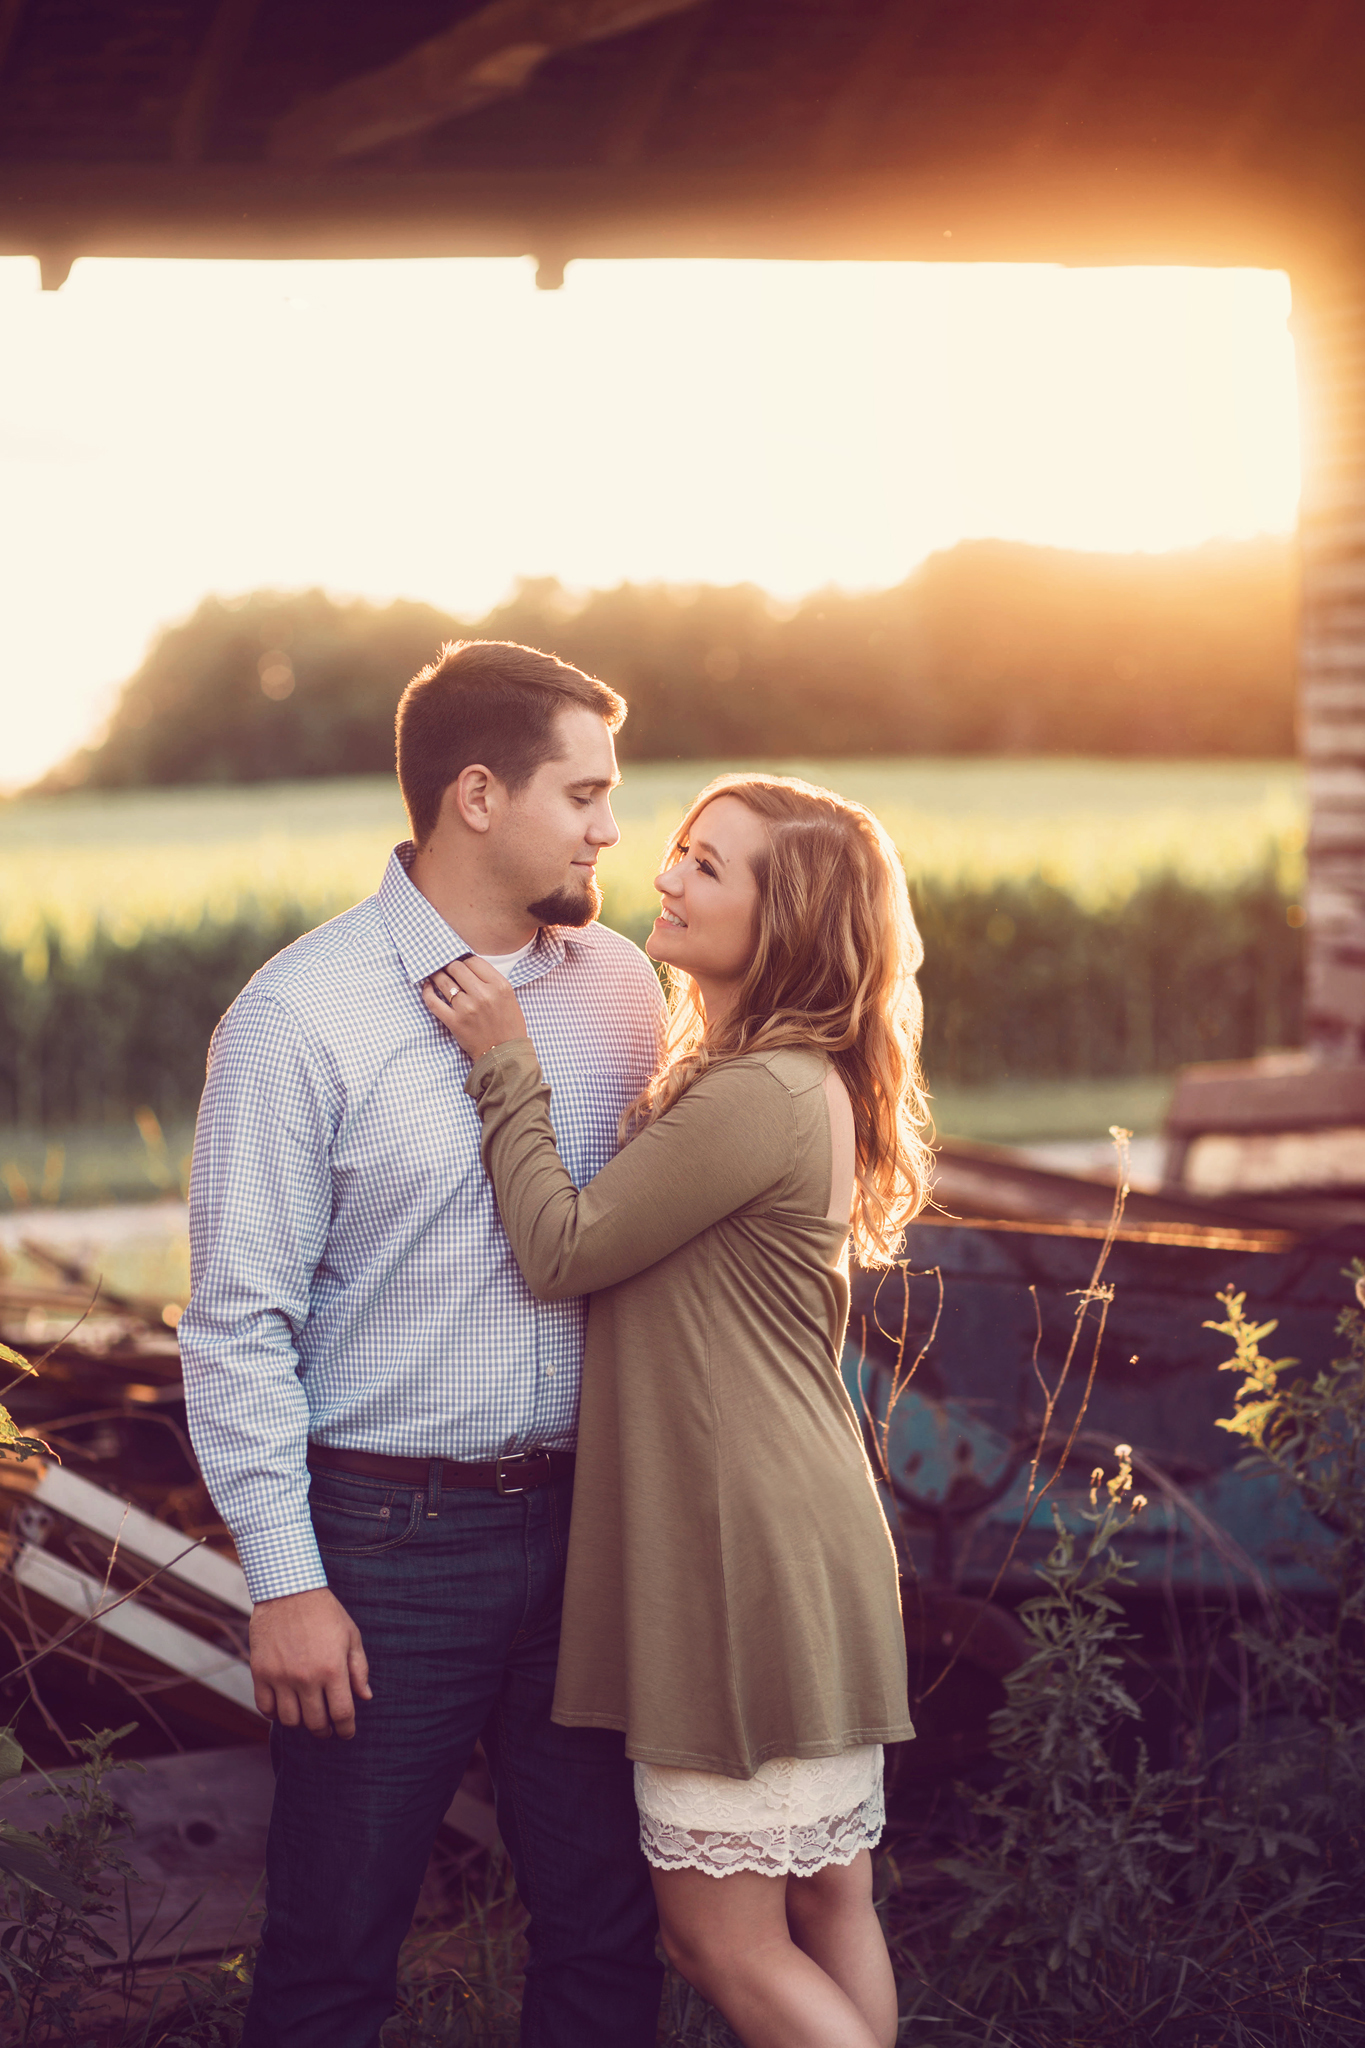 Cincinnati-and-Dayton-OH-Engagement-Session-and-Wedding-photography-6.jpg